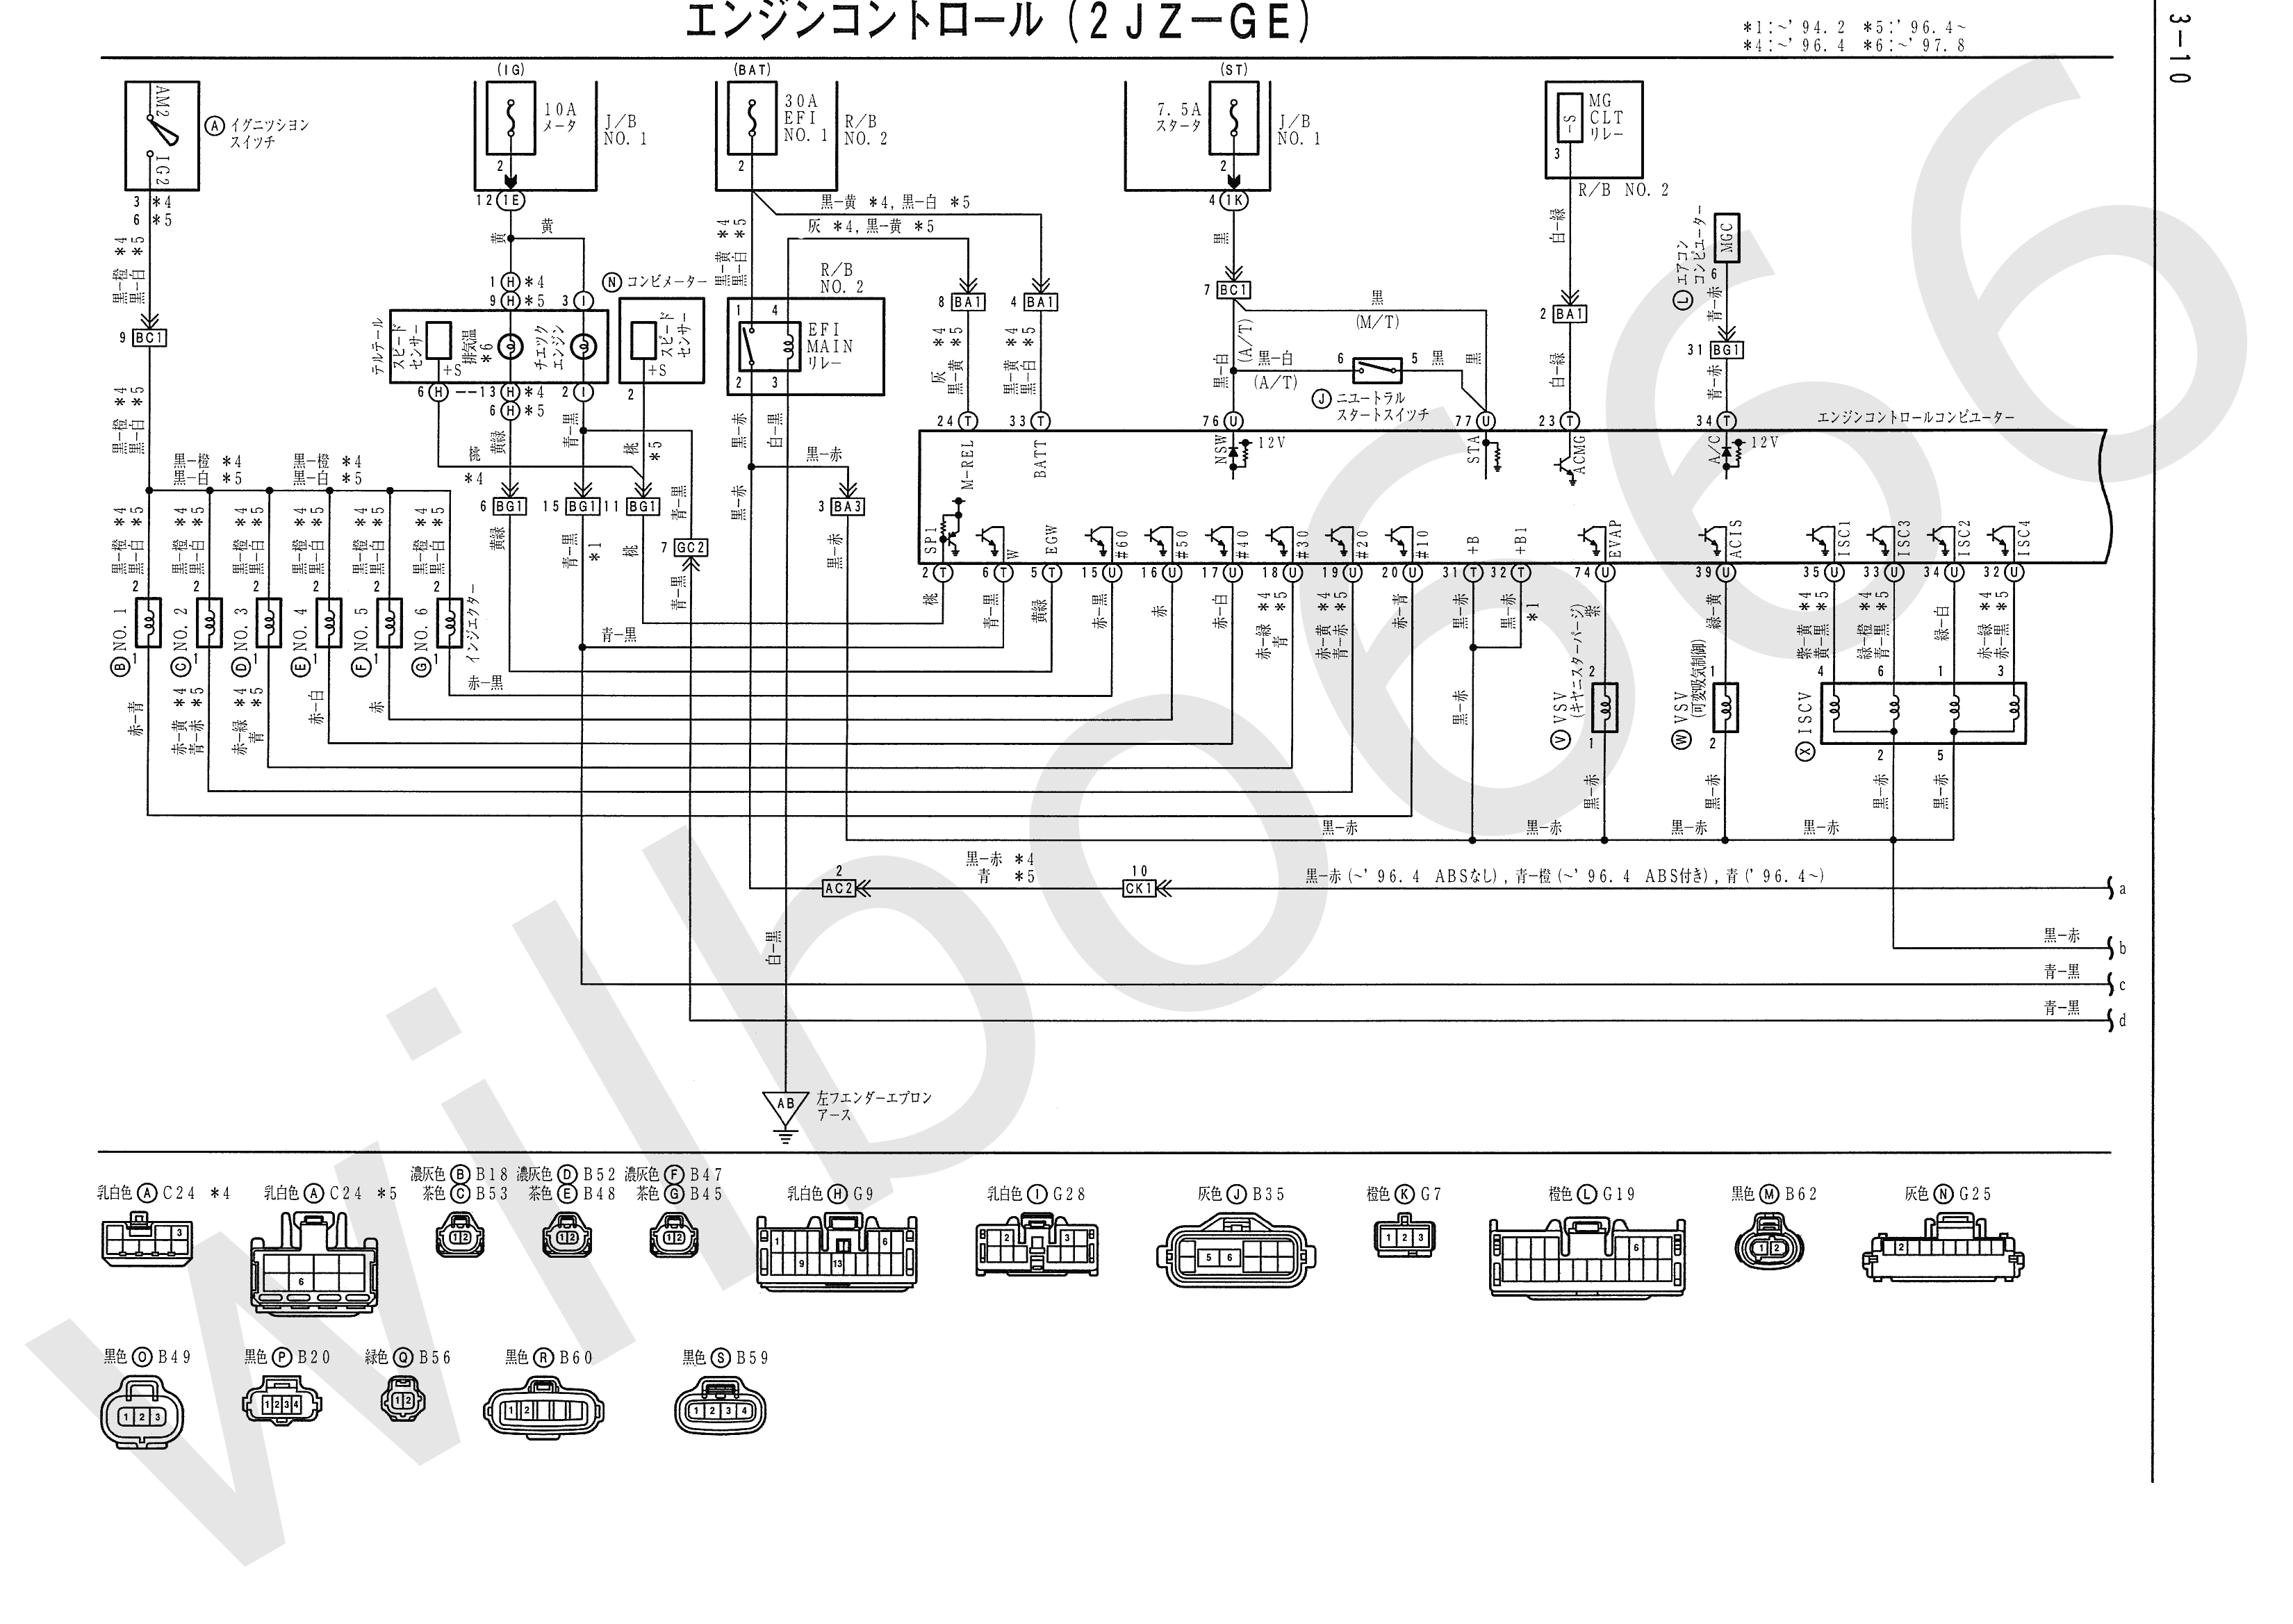 JZA80 Electrical Wiring Diagram 6742505 3 10 wilbo666 2jz ge jza80 supra engine wiring ge wiring diagrams at bakdesigns.co